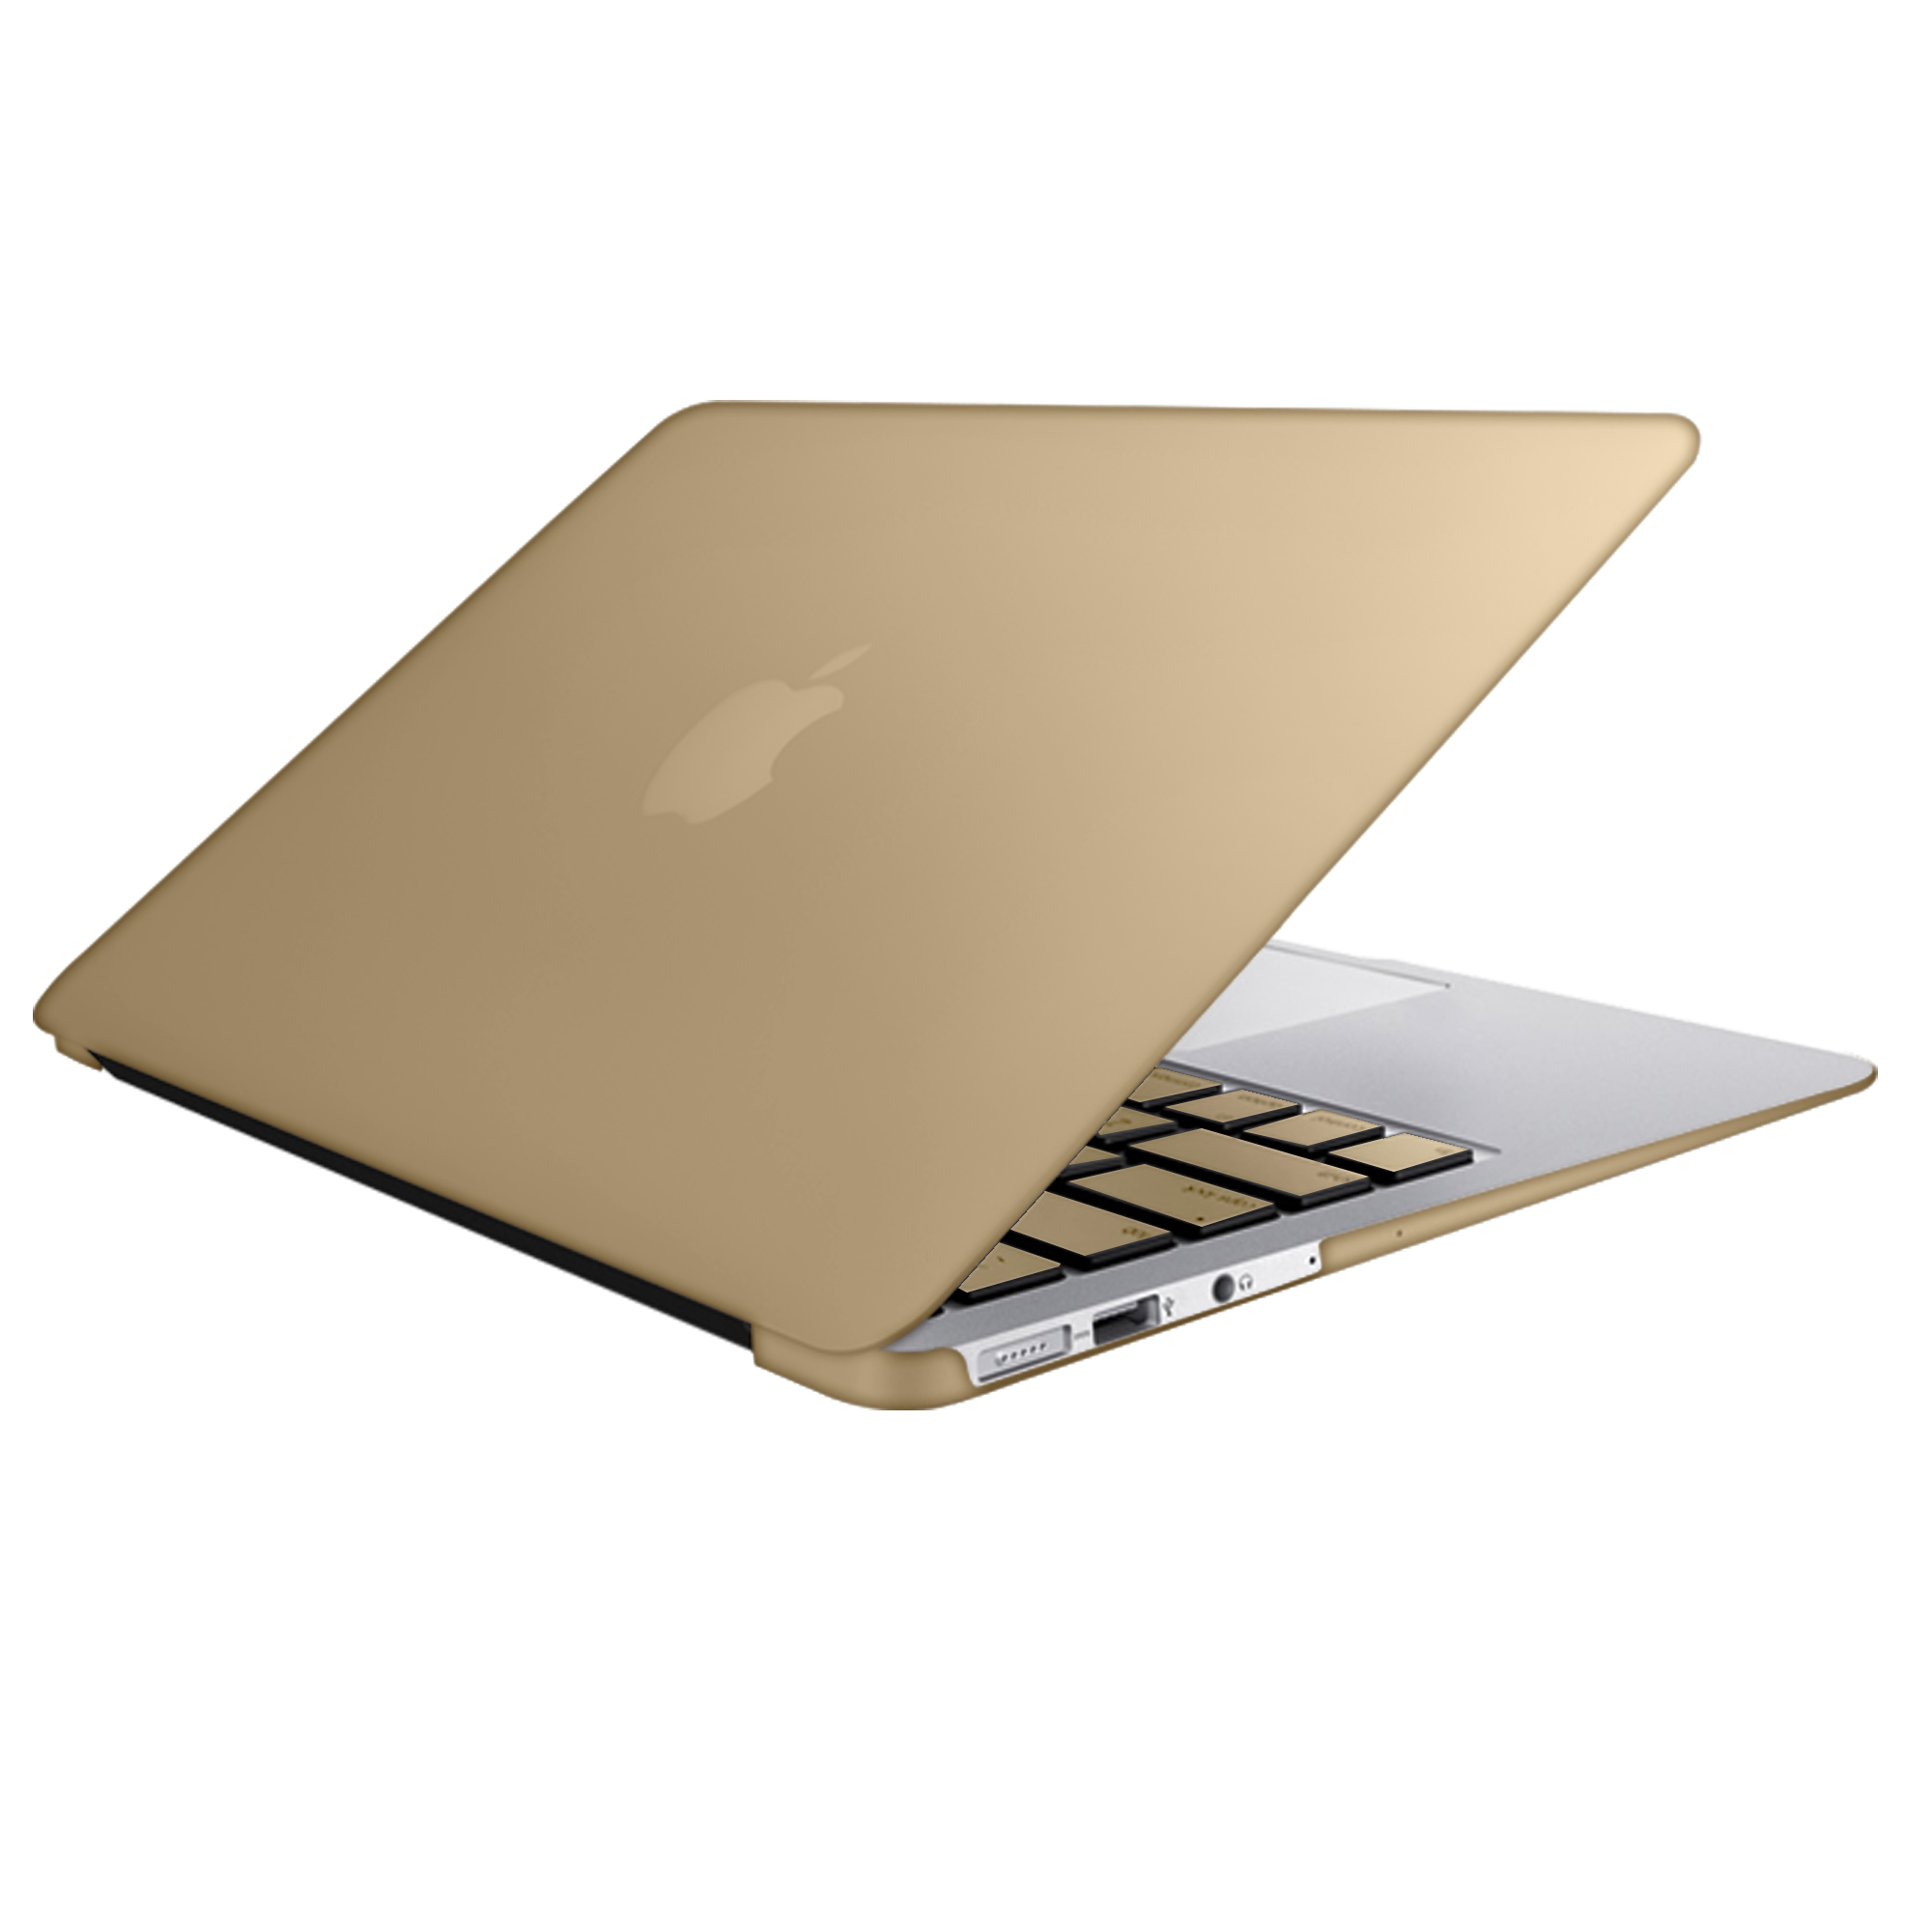 Rubberized-Hard-Matte-Case-Cover-For-Macbook-Air-11-13-3-Pro-13-3-15-Retina